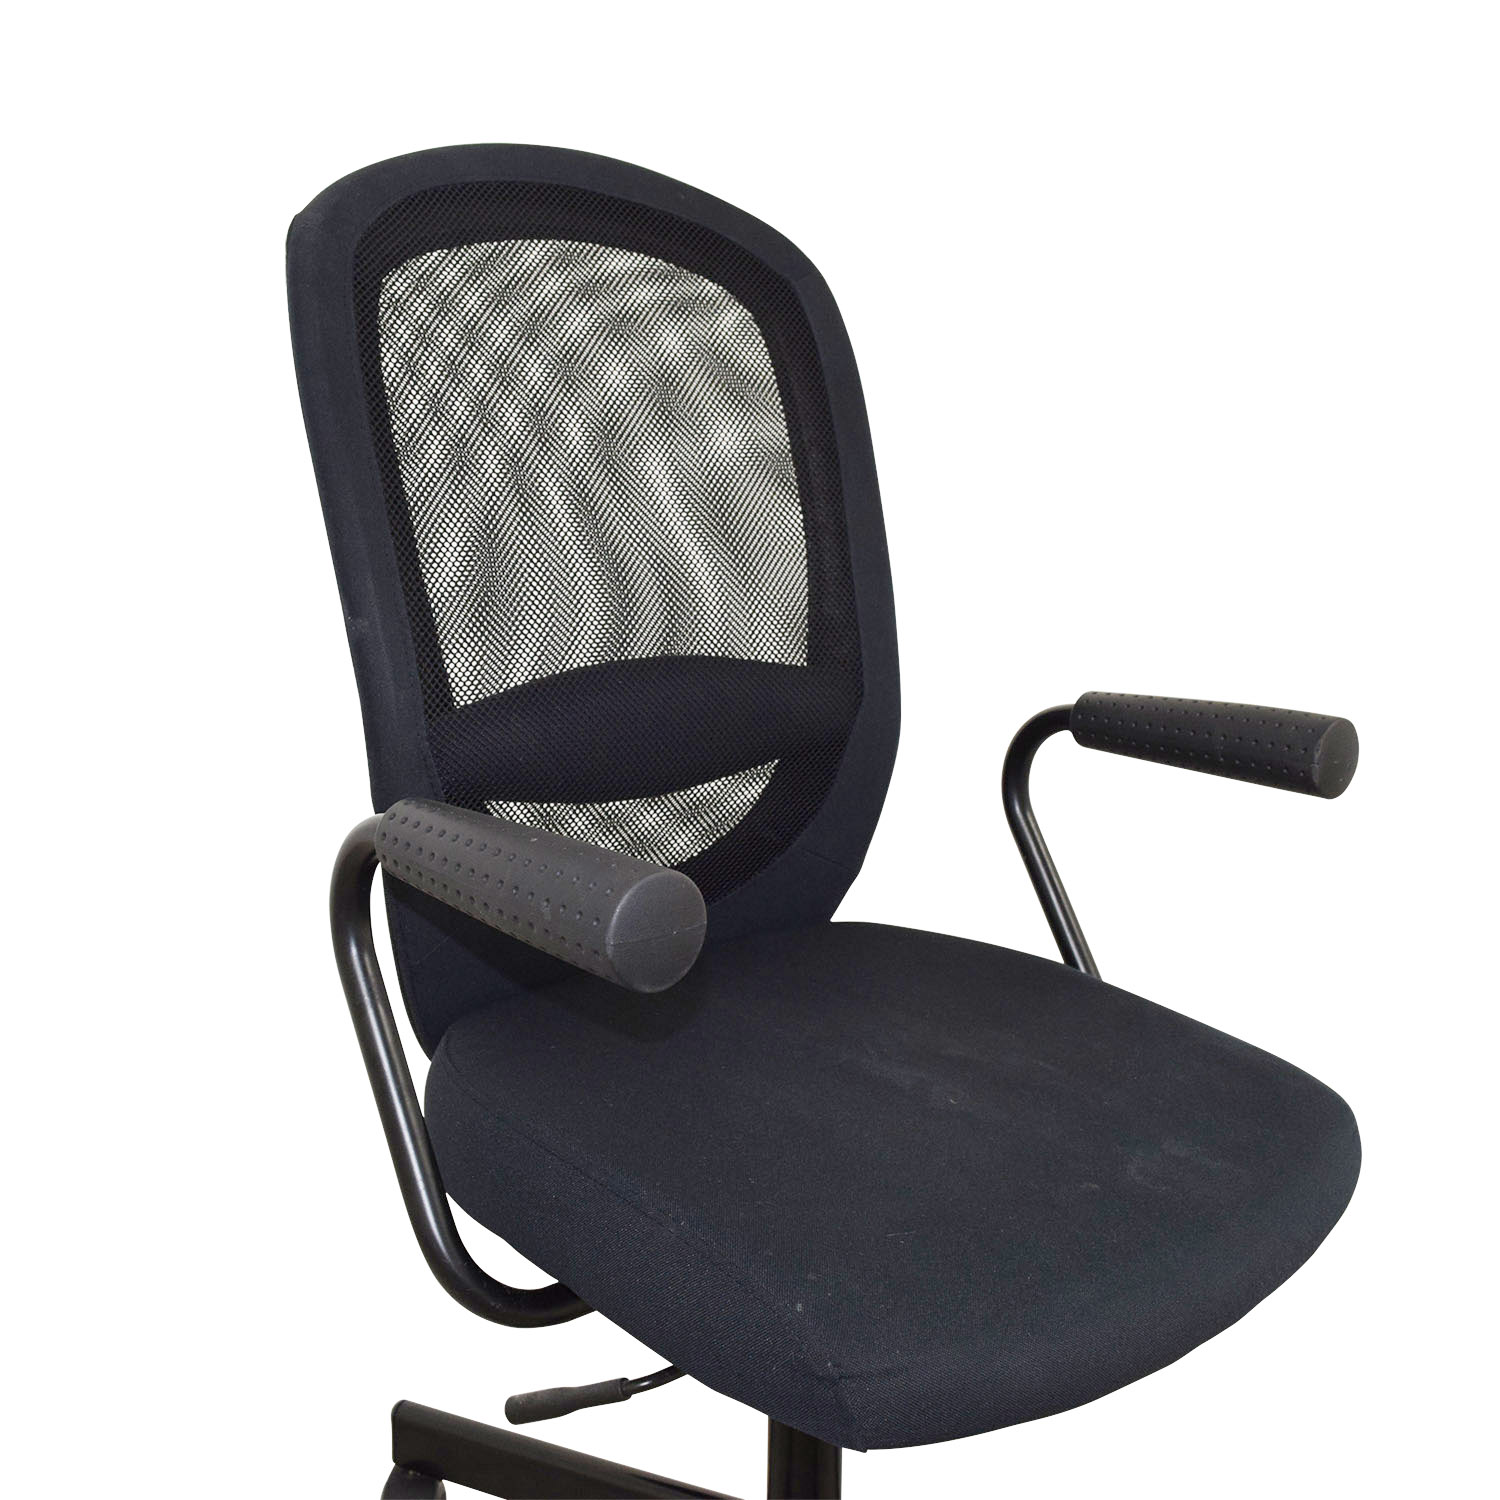 Flitan Nominell Swivel Chair with Armrests / Chairs